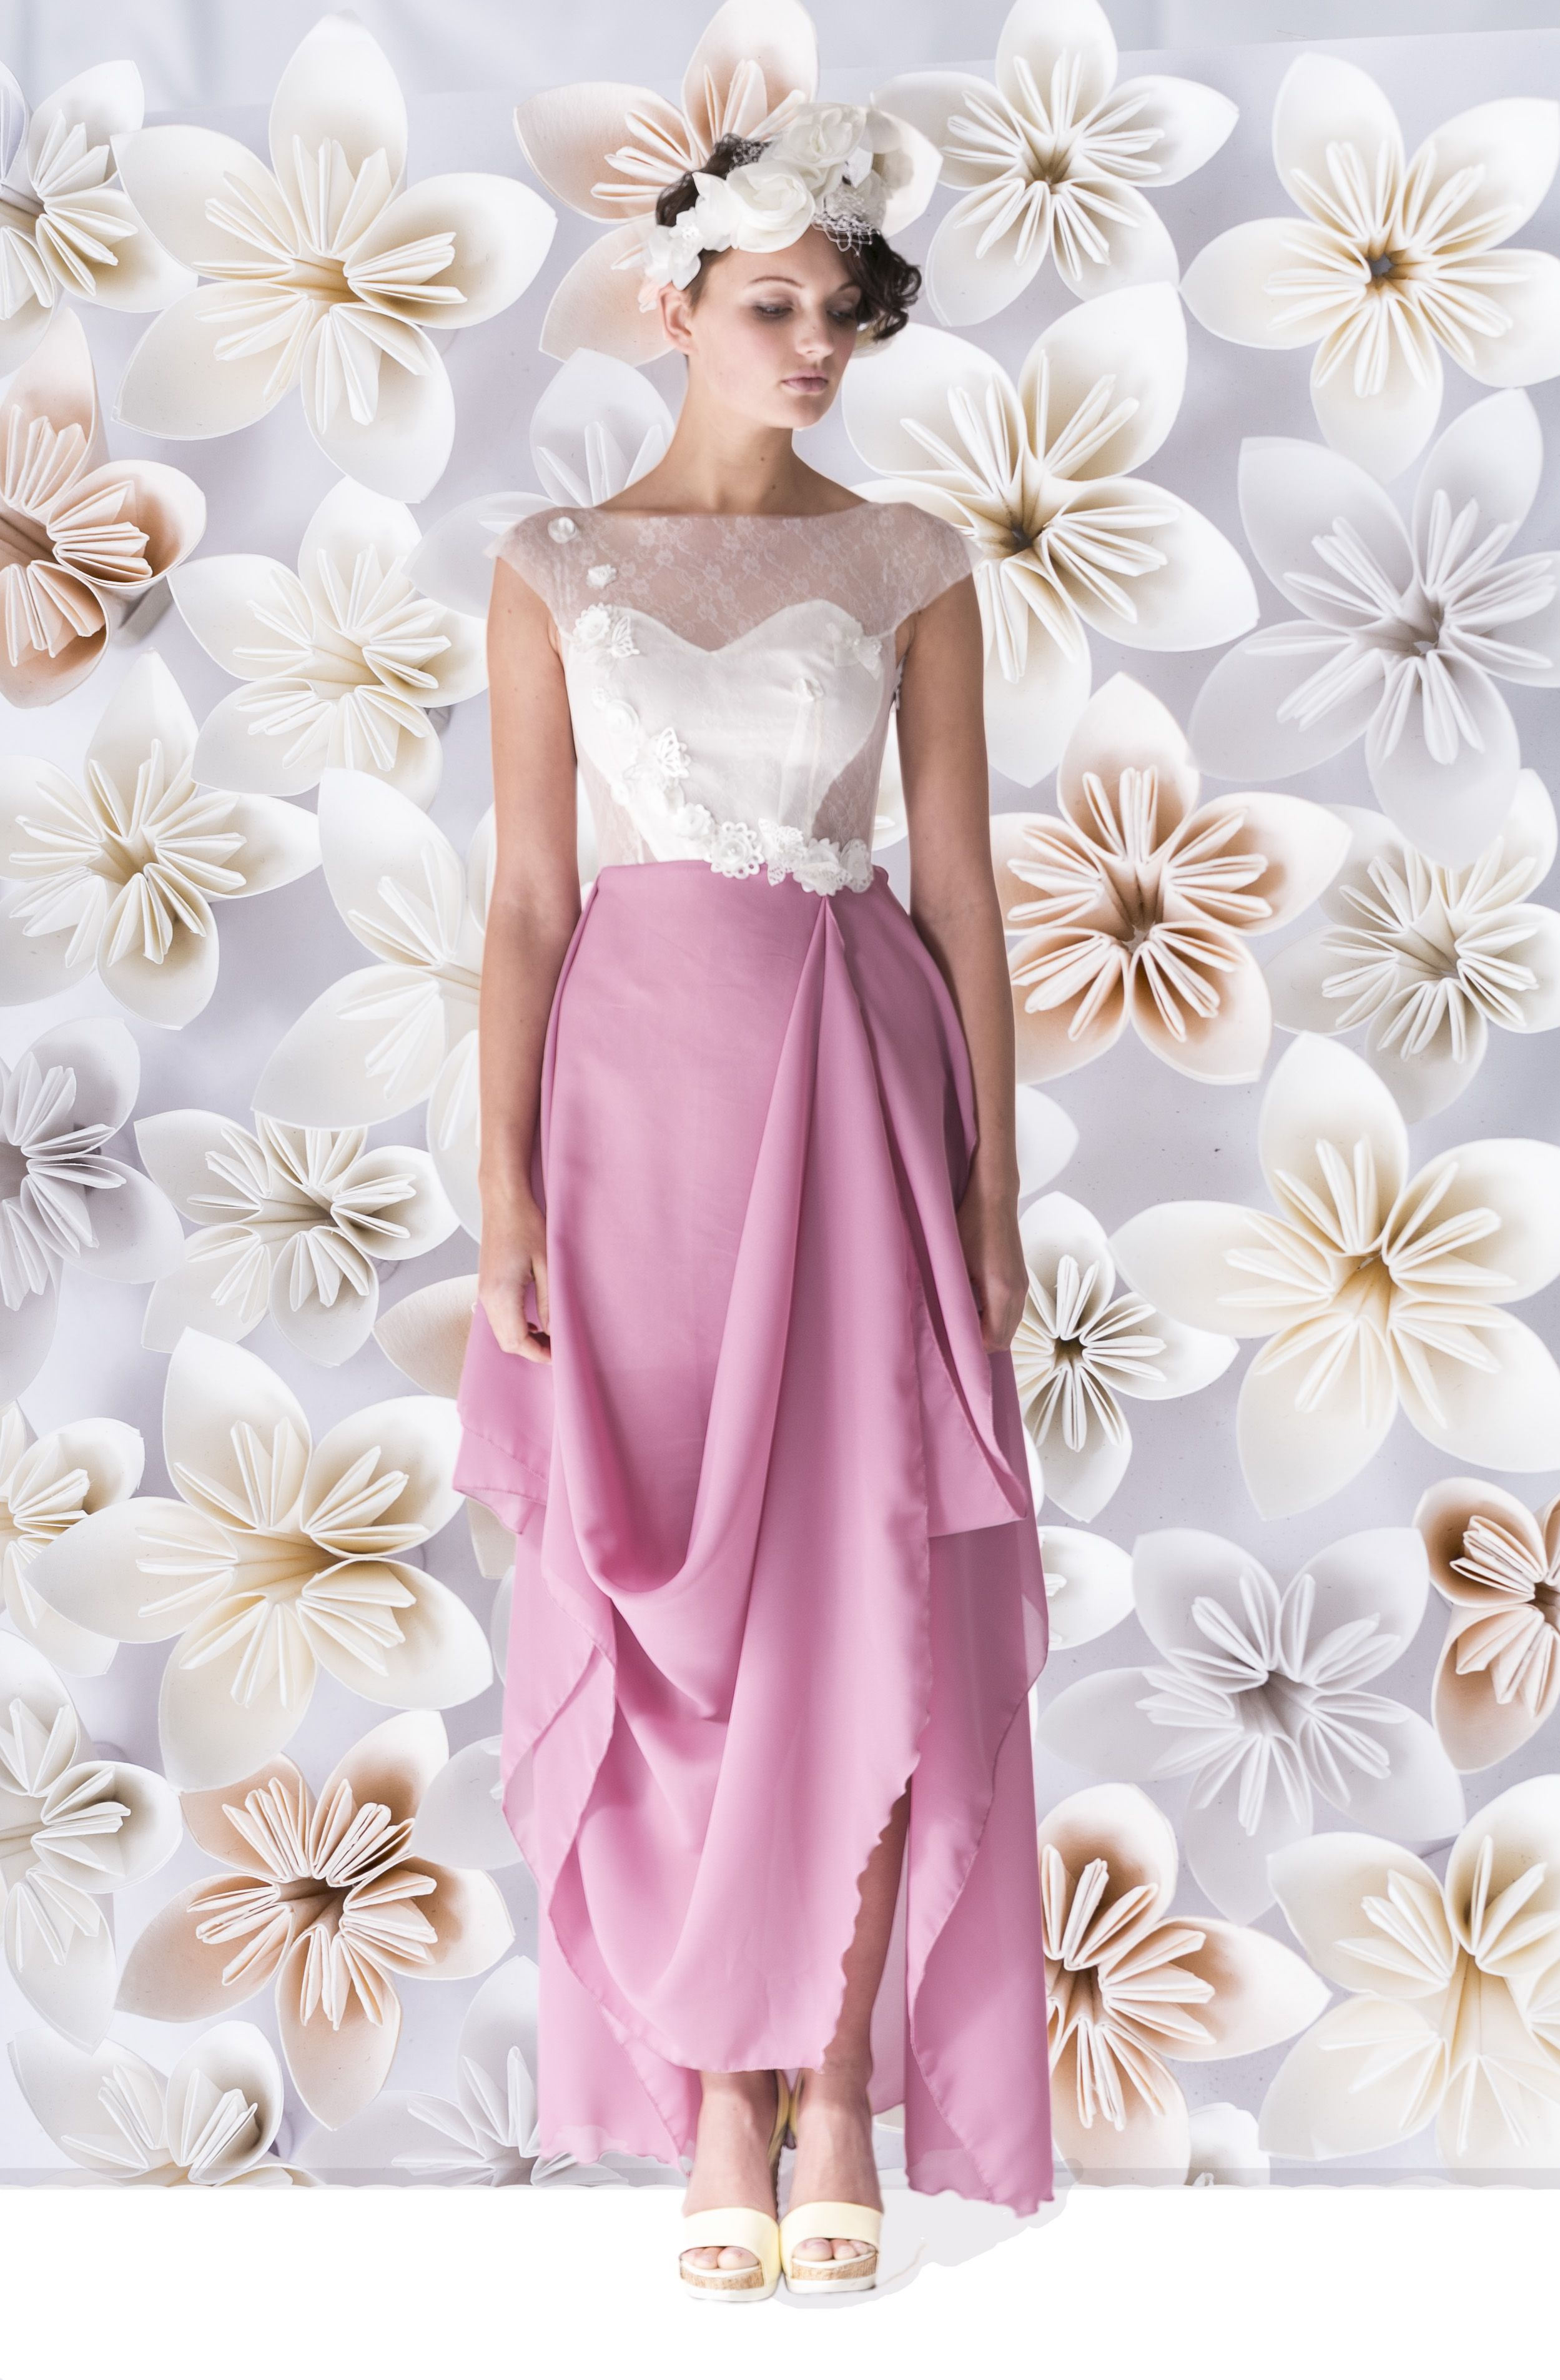 Queens evening formal or simple wedding dress with